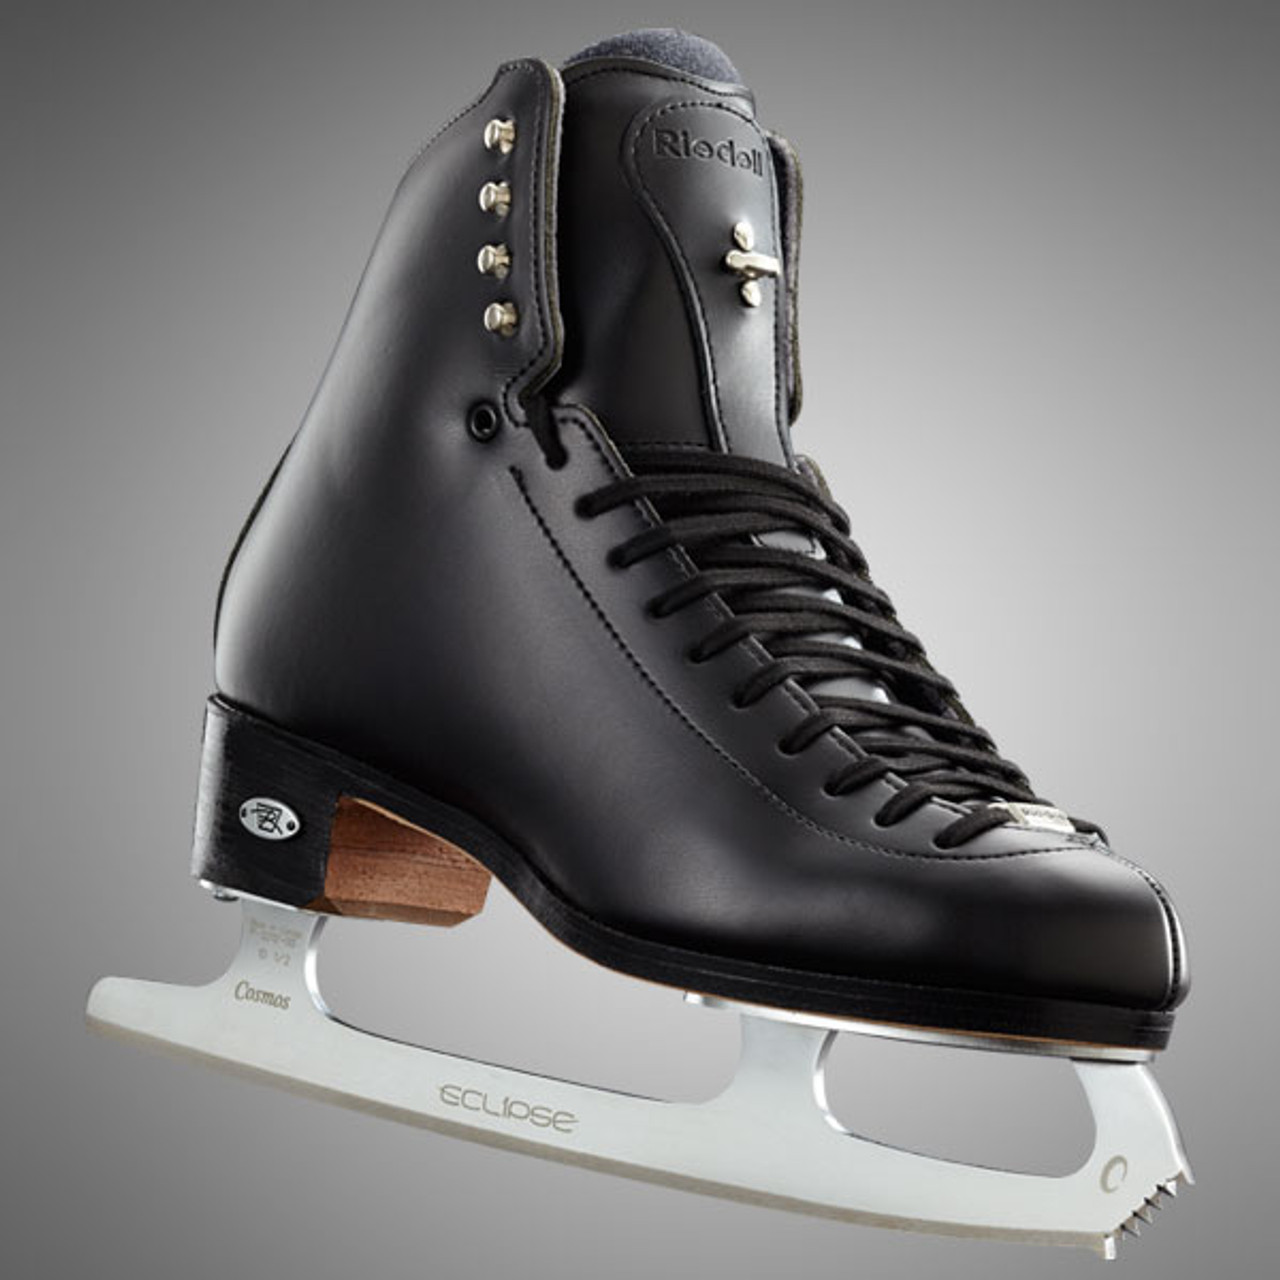 with Astra Blades Riedell Model 910 Flair Ladies Ice Skates